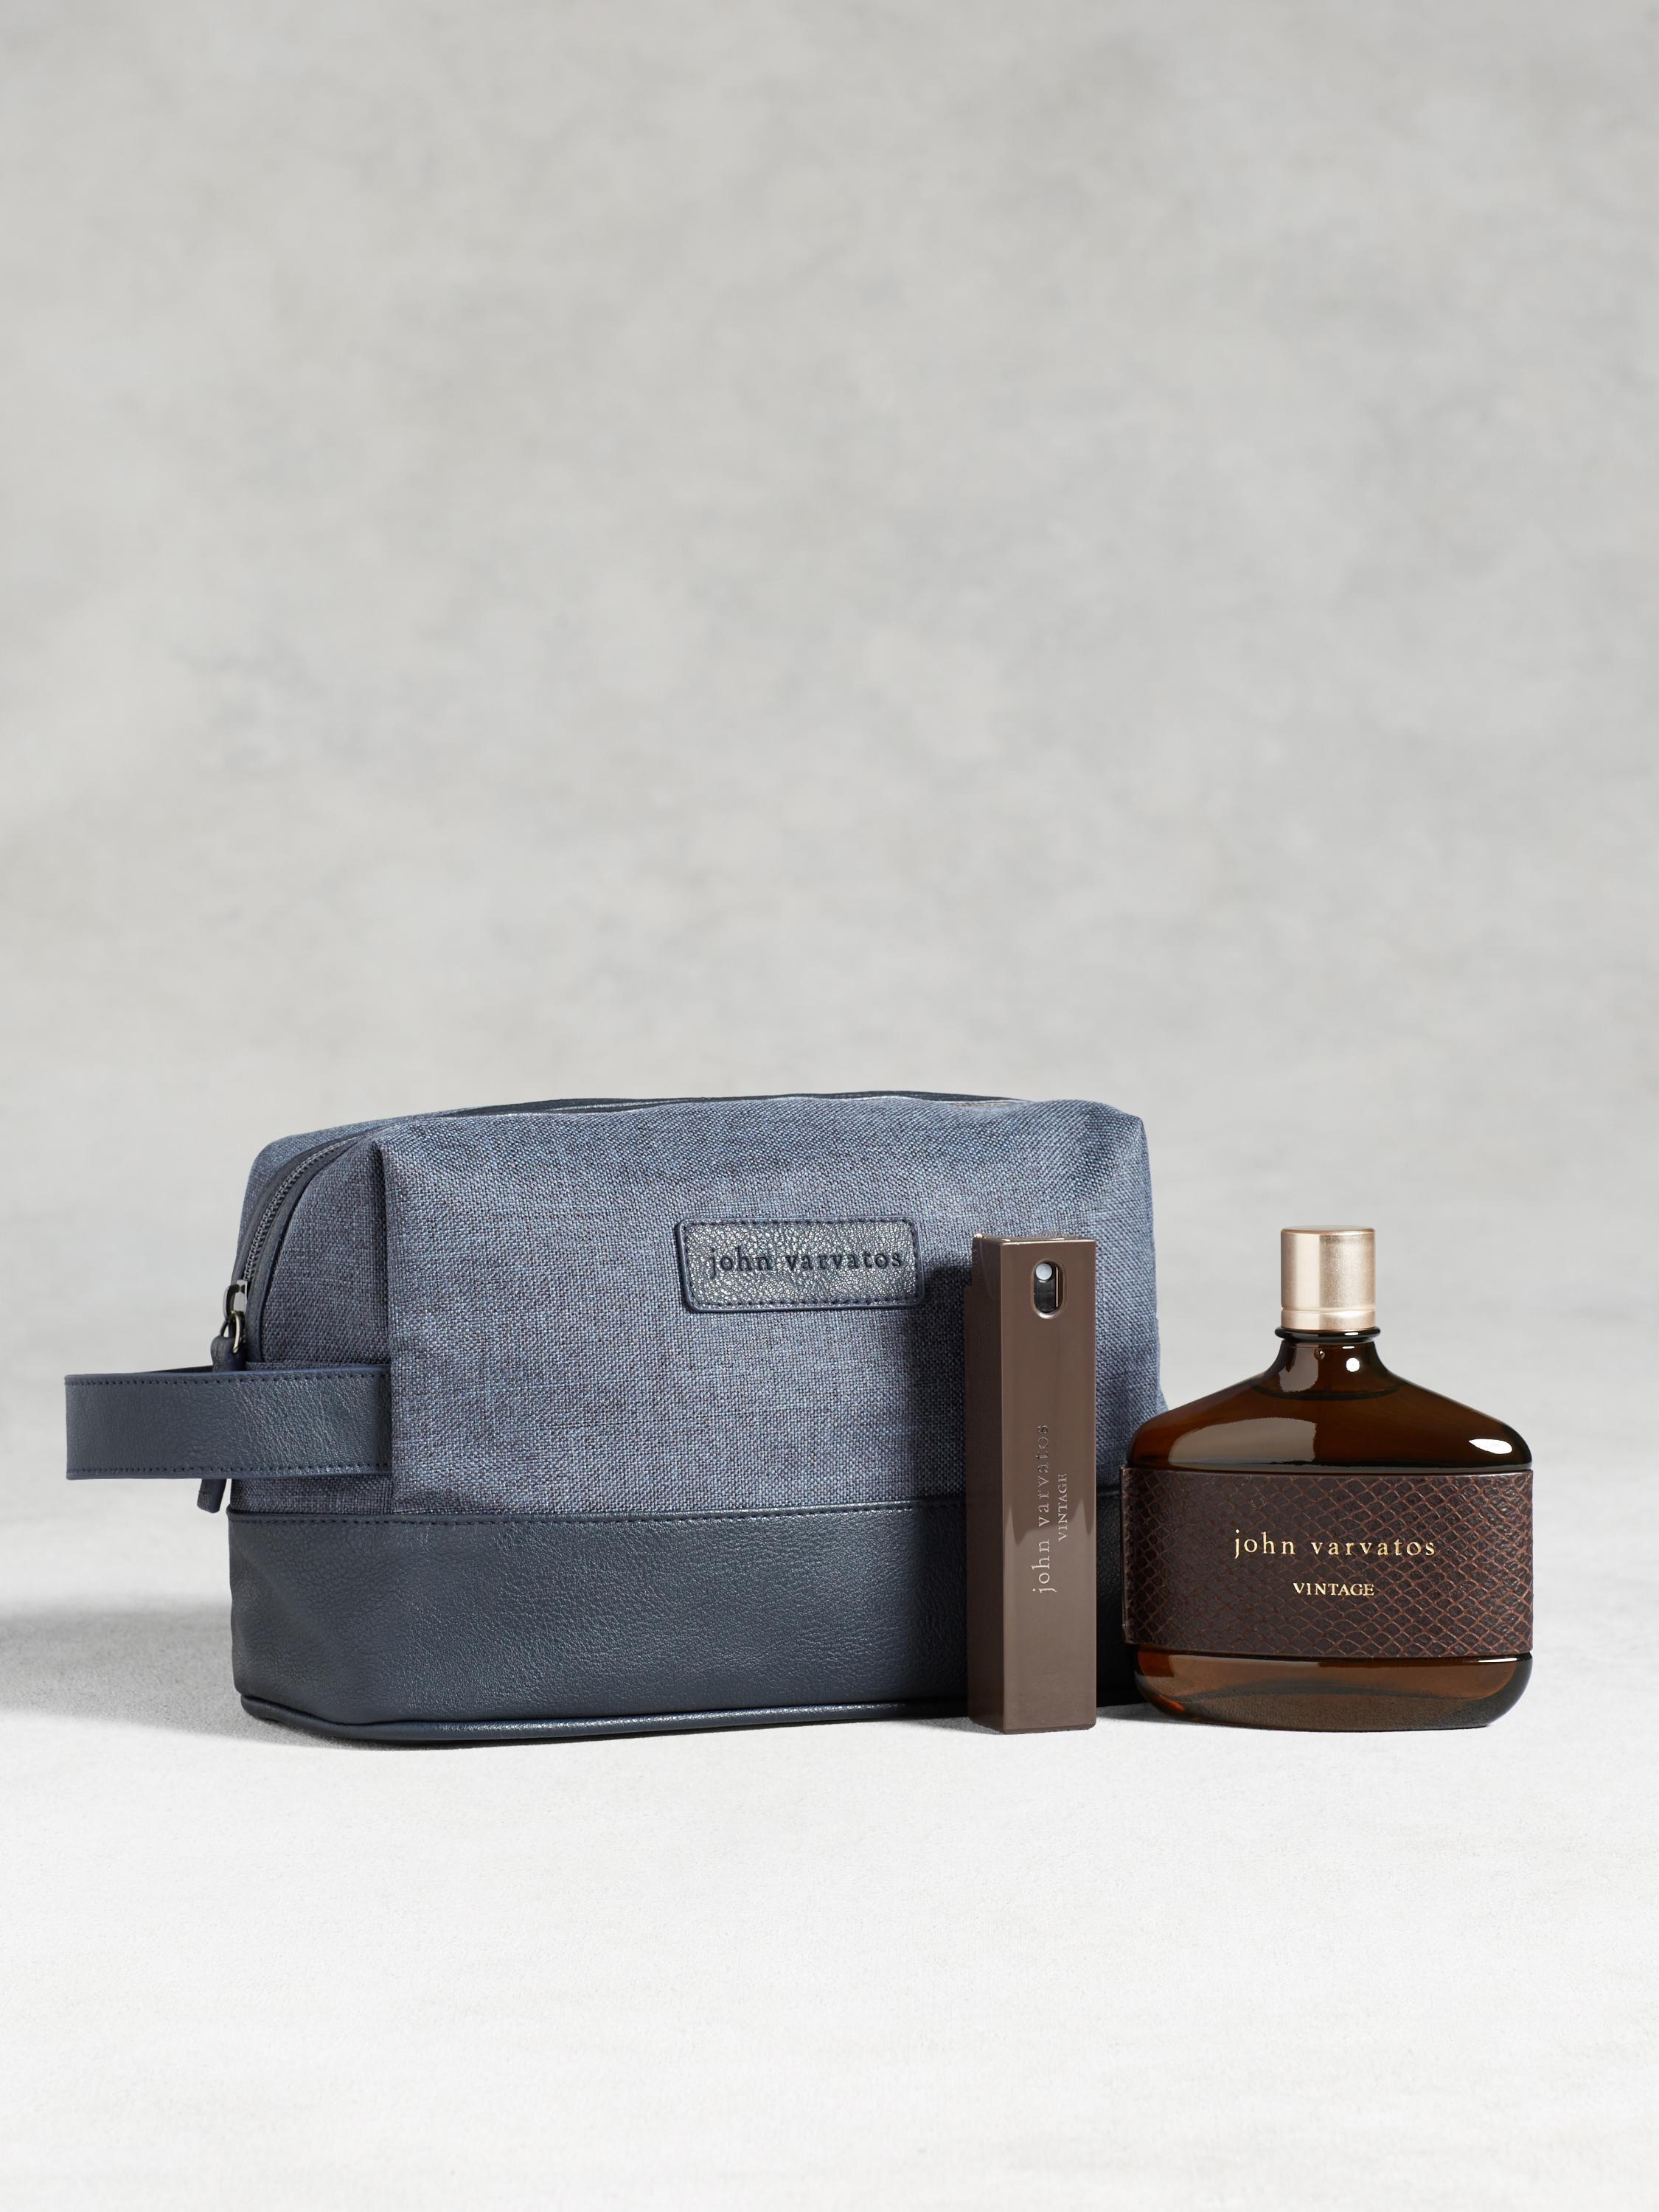 Vintage 4.2oz Dopp Kit Set